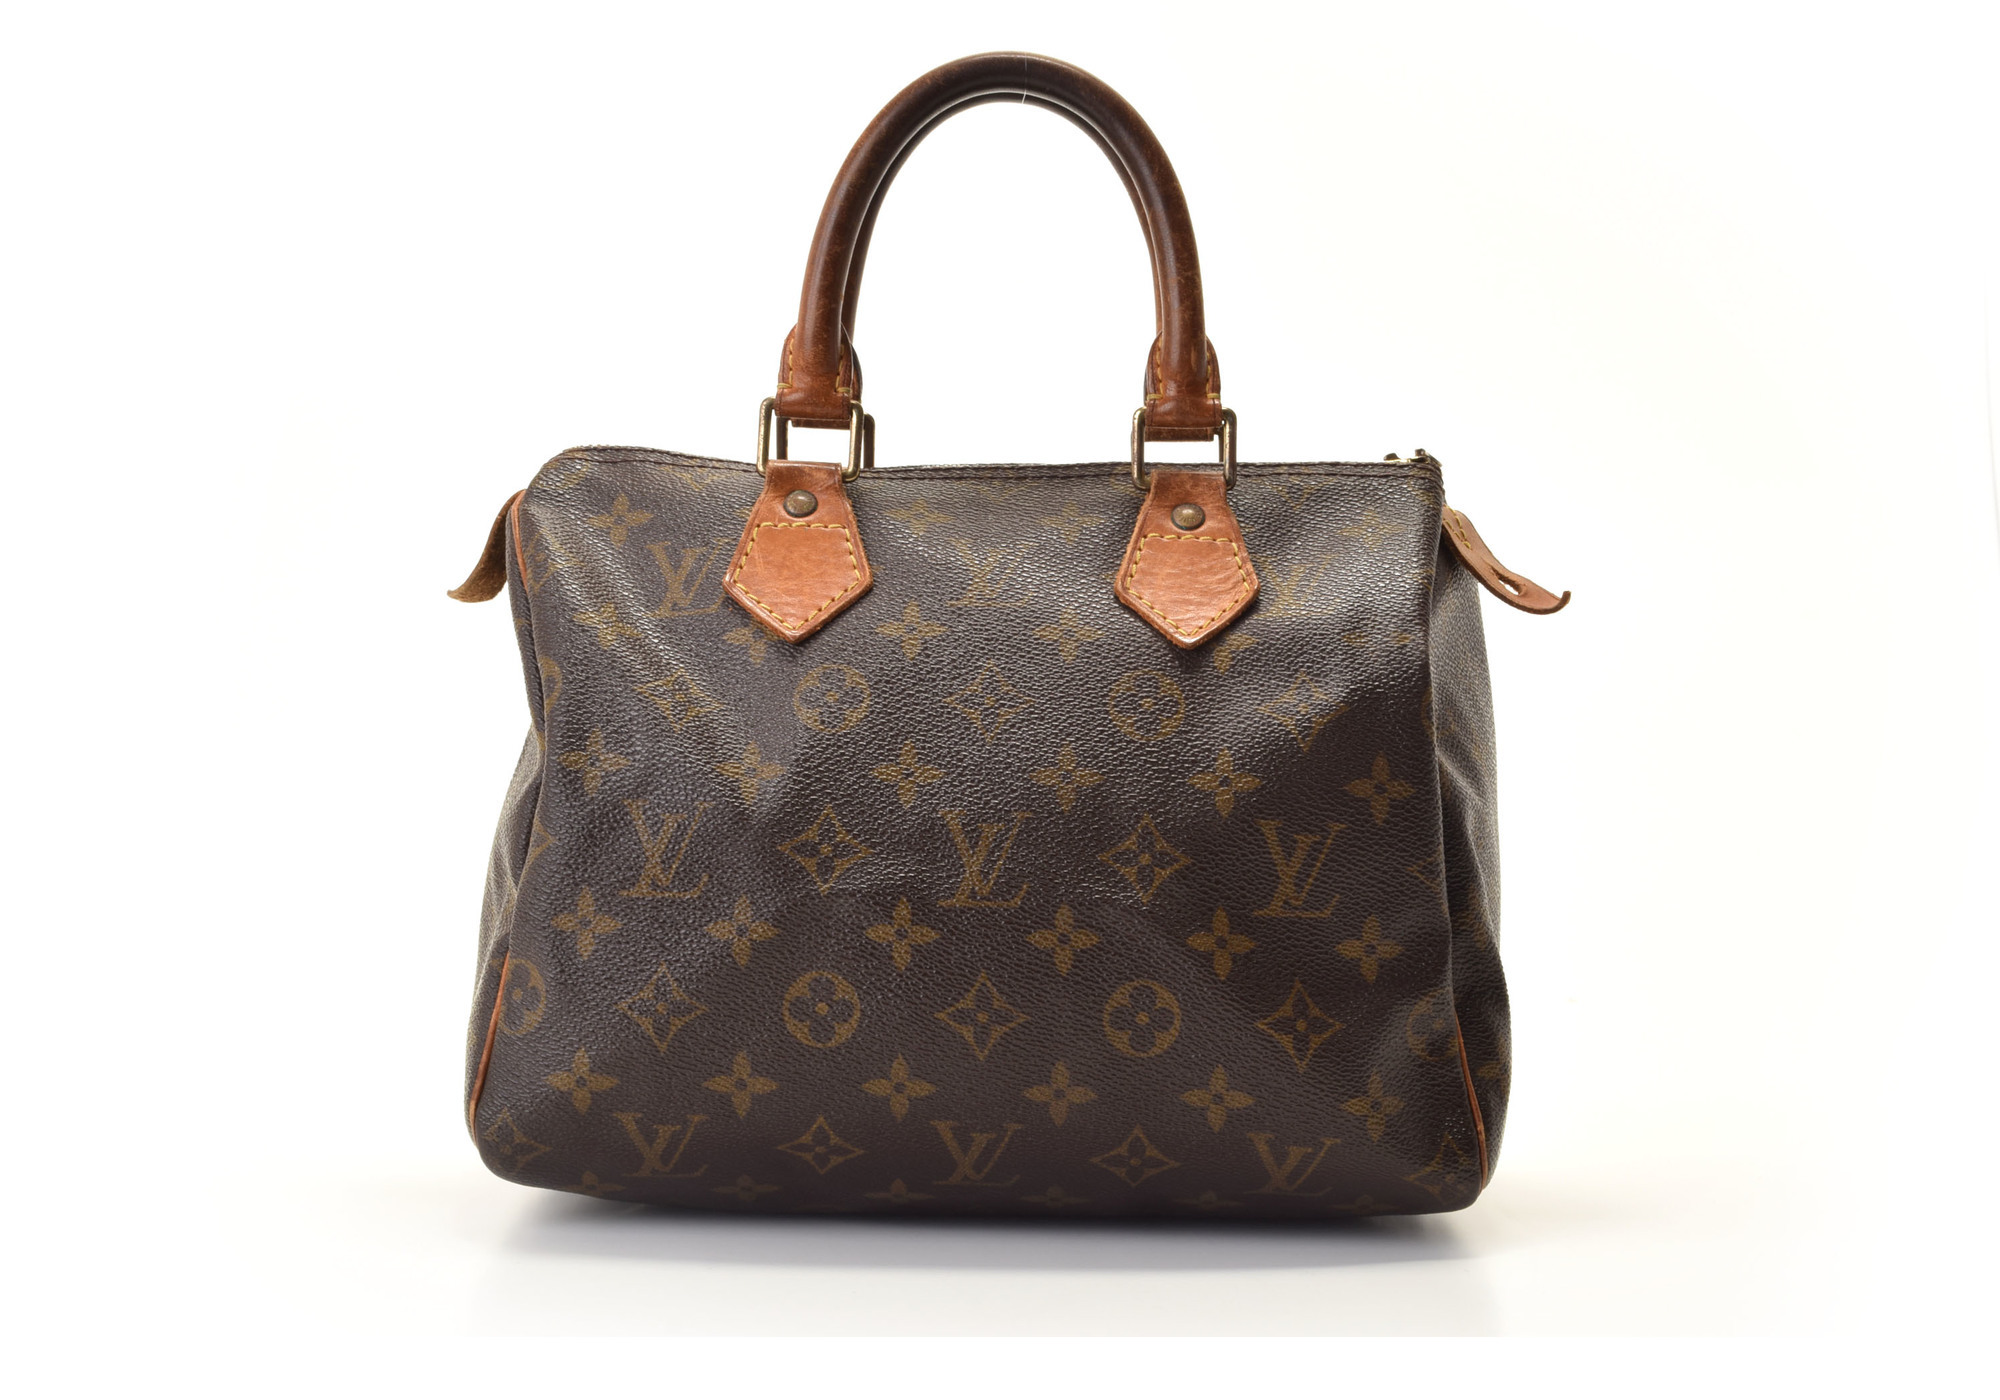 louis vuitton monogram speedy 25 m41528 damen handtasche. Black Bedroom Furniture Sets. Home Design Ideas